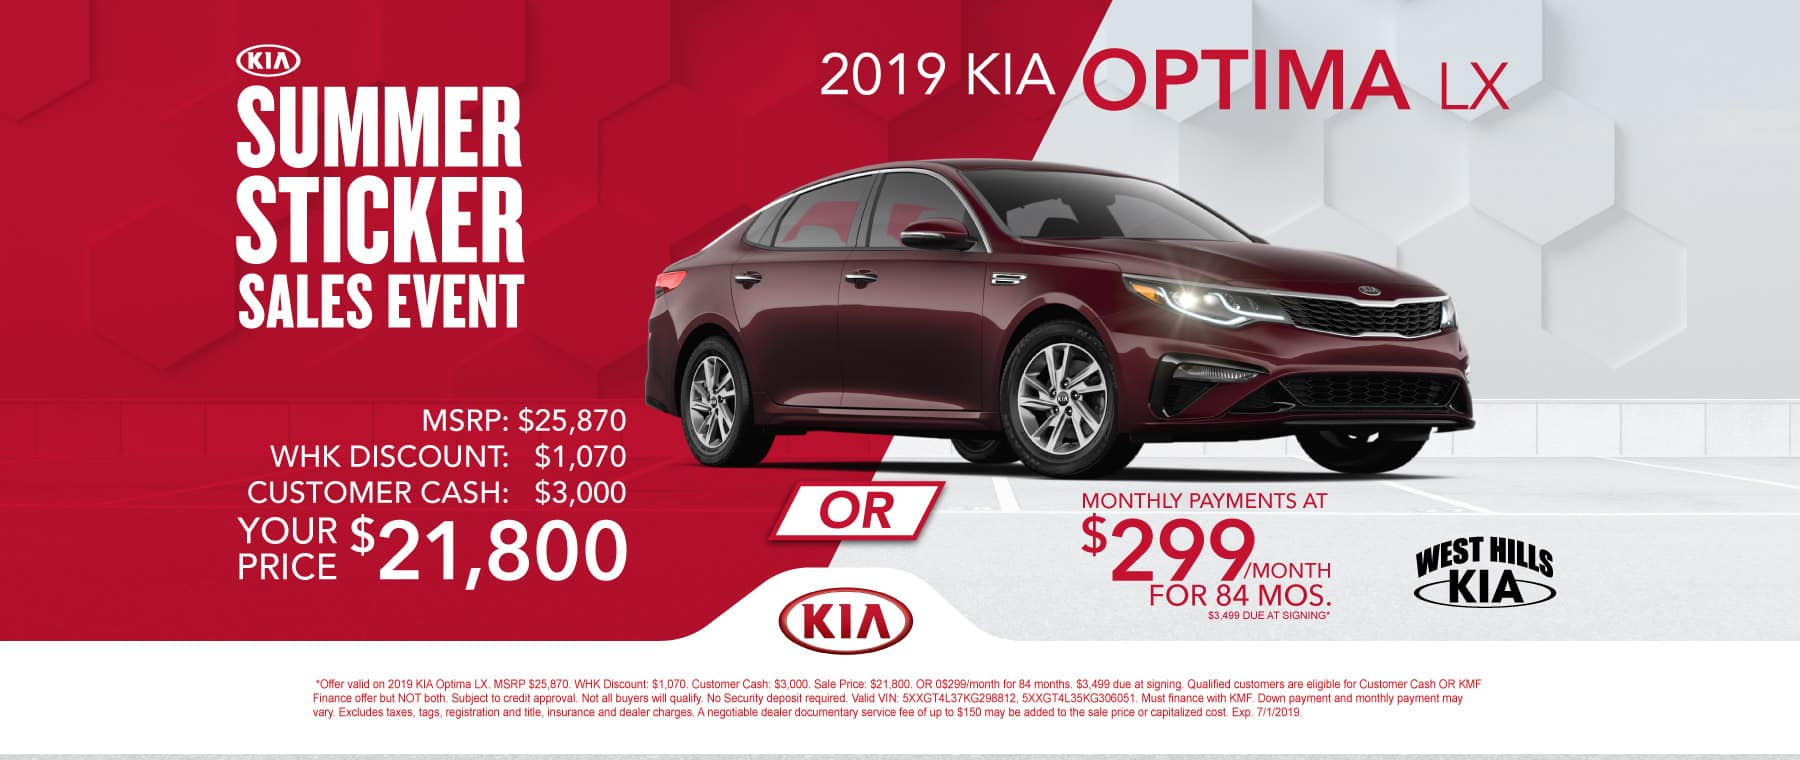 2019 KIA Optima LX (Featured Vehicle)  MSRP: $25,870 WHK Discount: $1,070  Customer Cash: $3,000  Sale Price: $21,800  OR $299/month for 84 months  $3,499 Due at Signing  *Offer valid on 2019 KIA Optima LX. MSRP $25,870. WHK Discount: $1,070. Customer Cash: $3,000. Sale Price: $21,800. OR 0$299/month for 84 months. $3,499 due at signing. Qualified customers are eligible for Customer Cash OR KMF Finance offer but NOT both. Subject to credit approval. Not all buyers will qualify. No Security deposit required. Valid VIN: 5XXGT4L37KG298812, 5XXGT4L35KG306051. Must finance with KMF. Down payment and monthly payment may vary. Excludes taxes, tags, registration and title, insurance and dealer charges. A negotiable dealer documentary service fee of up to $150 may be added to the sale price or capitalized cost. Exp. 7/1/2019.